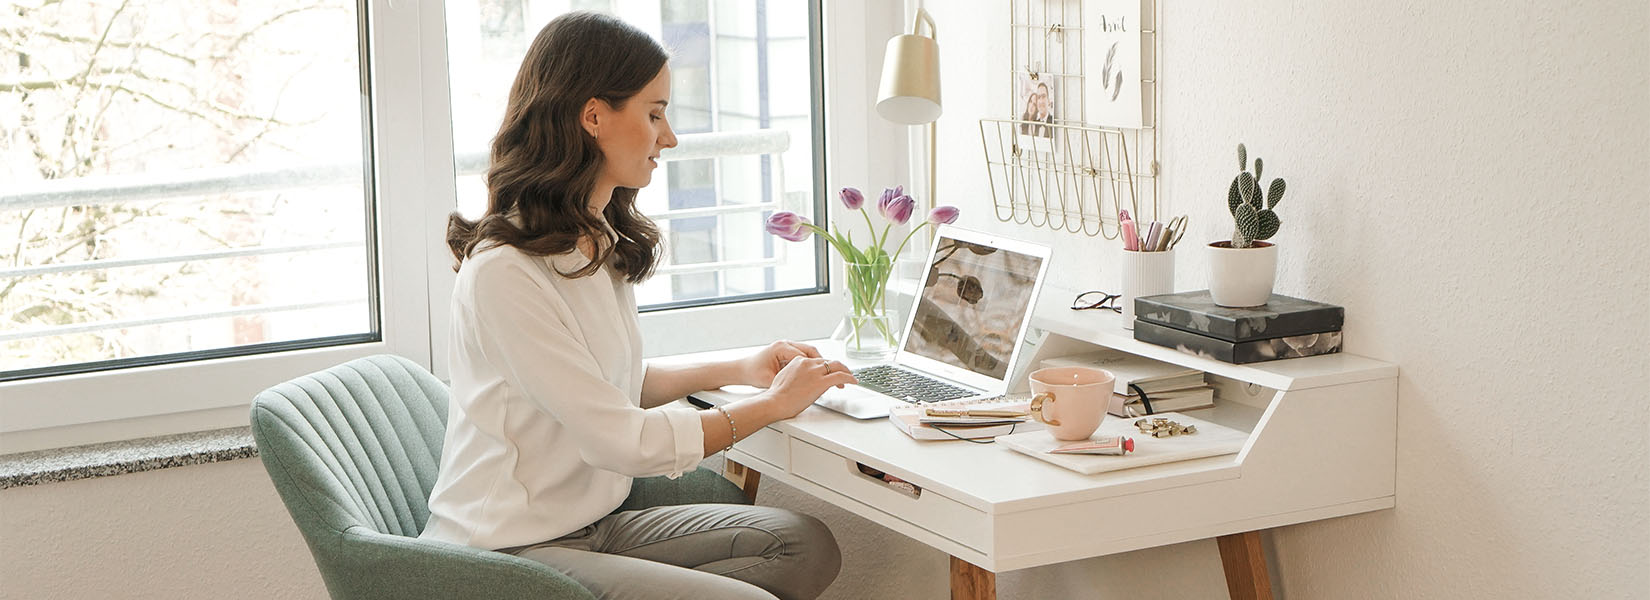 Working From Home – My Home Office and Tips on Productivity